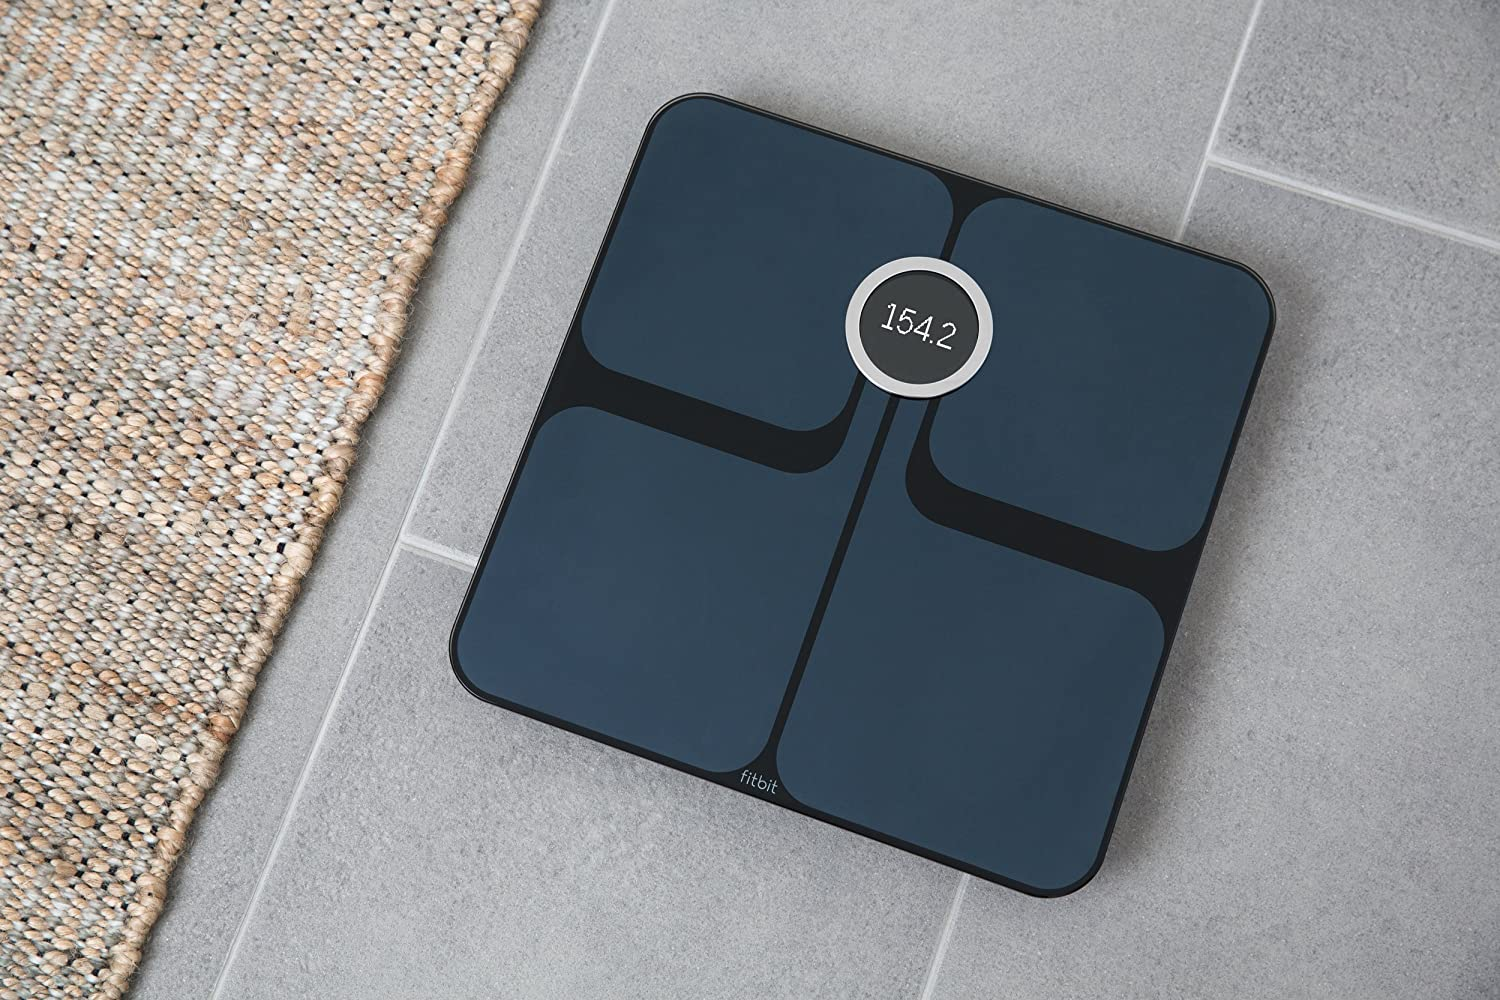 Fitbit Aria 2 Wi-Fi Smart Scale Black Friday Deal 2020